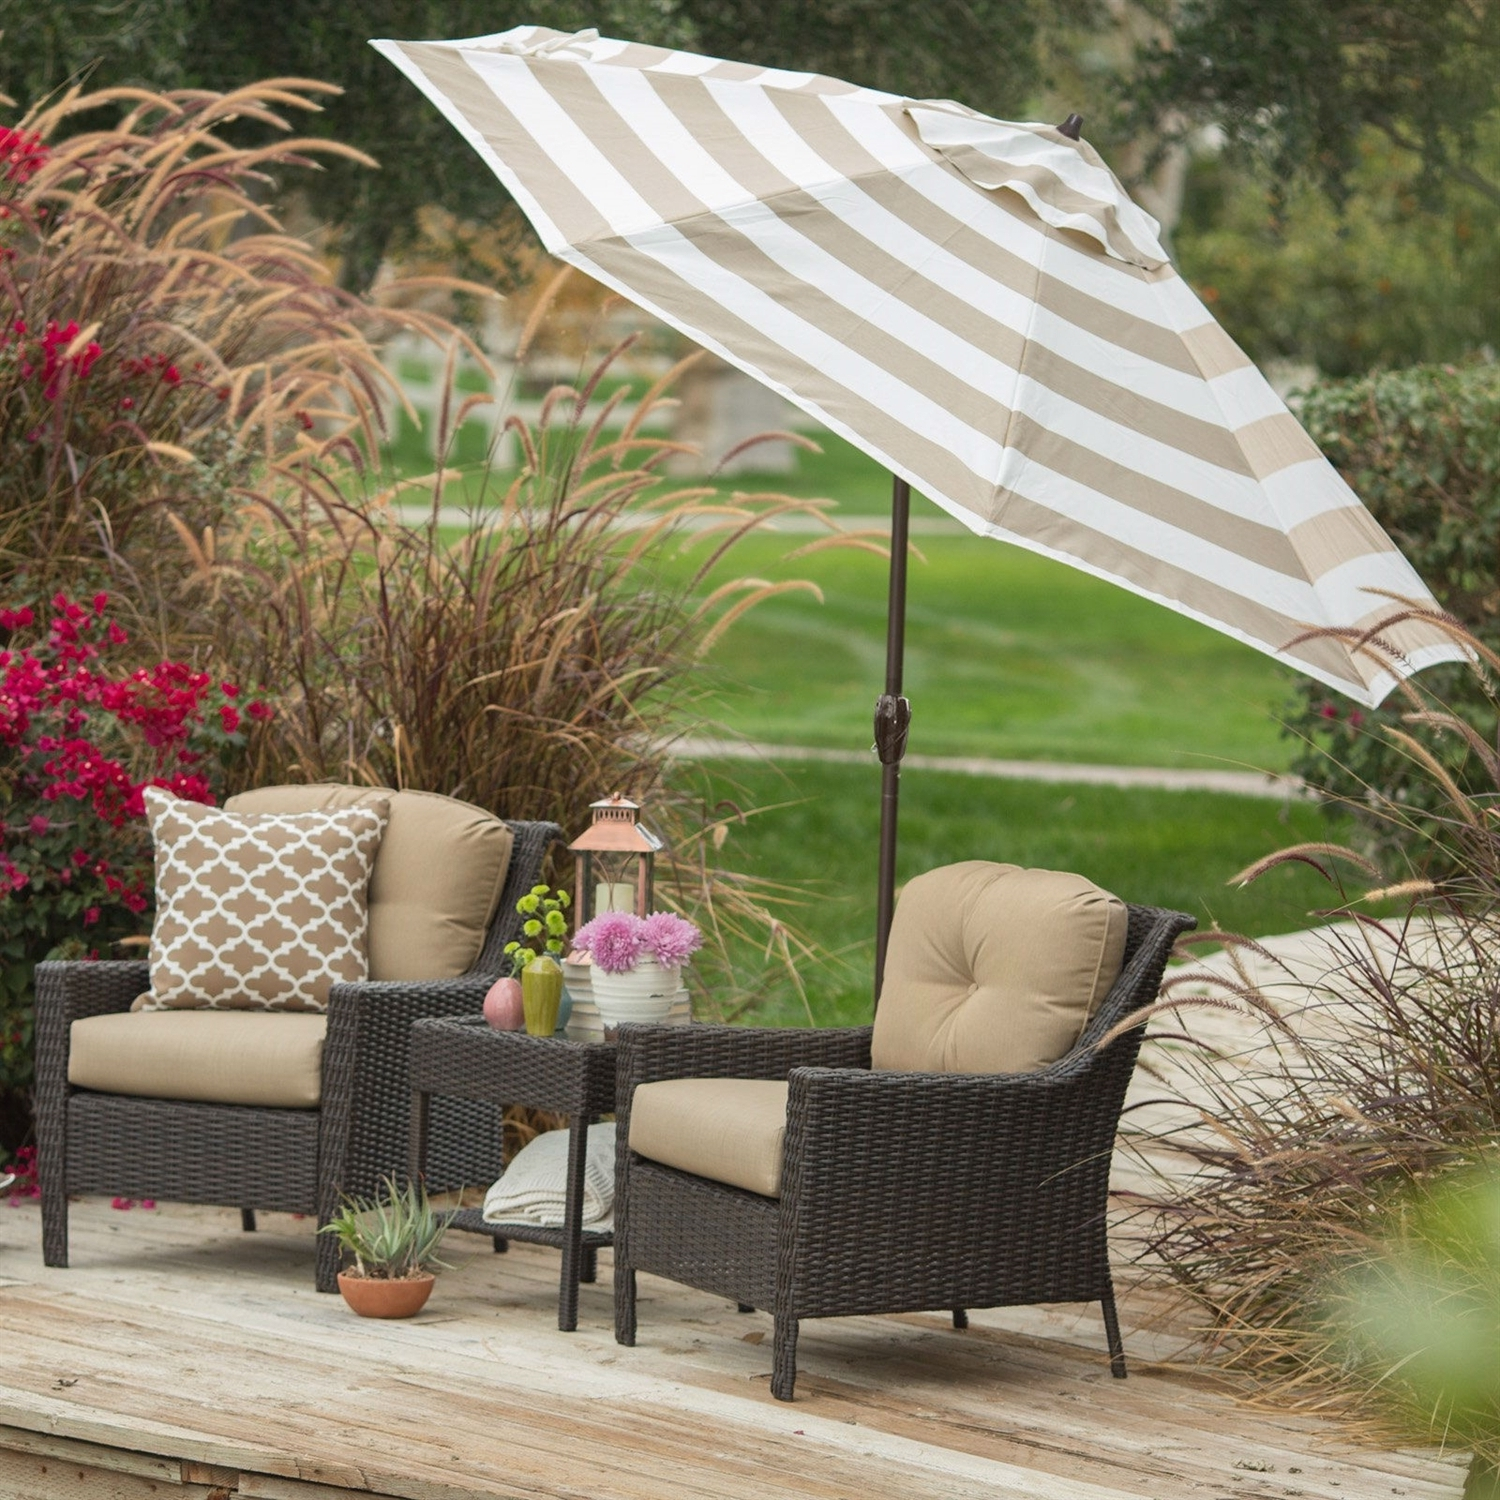 9 Ft Patio Umbrellas Intended For Most Recently Released 9 Ft Market Umbrella With Tilt And Crank With Beige And White Stripe (Gallery 18 of 20)